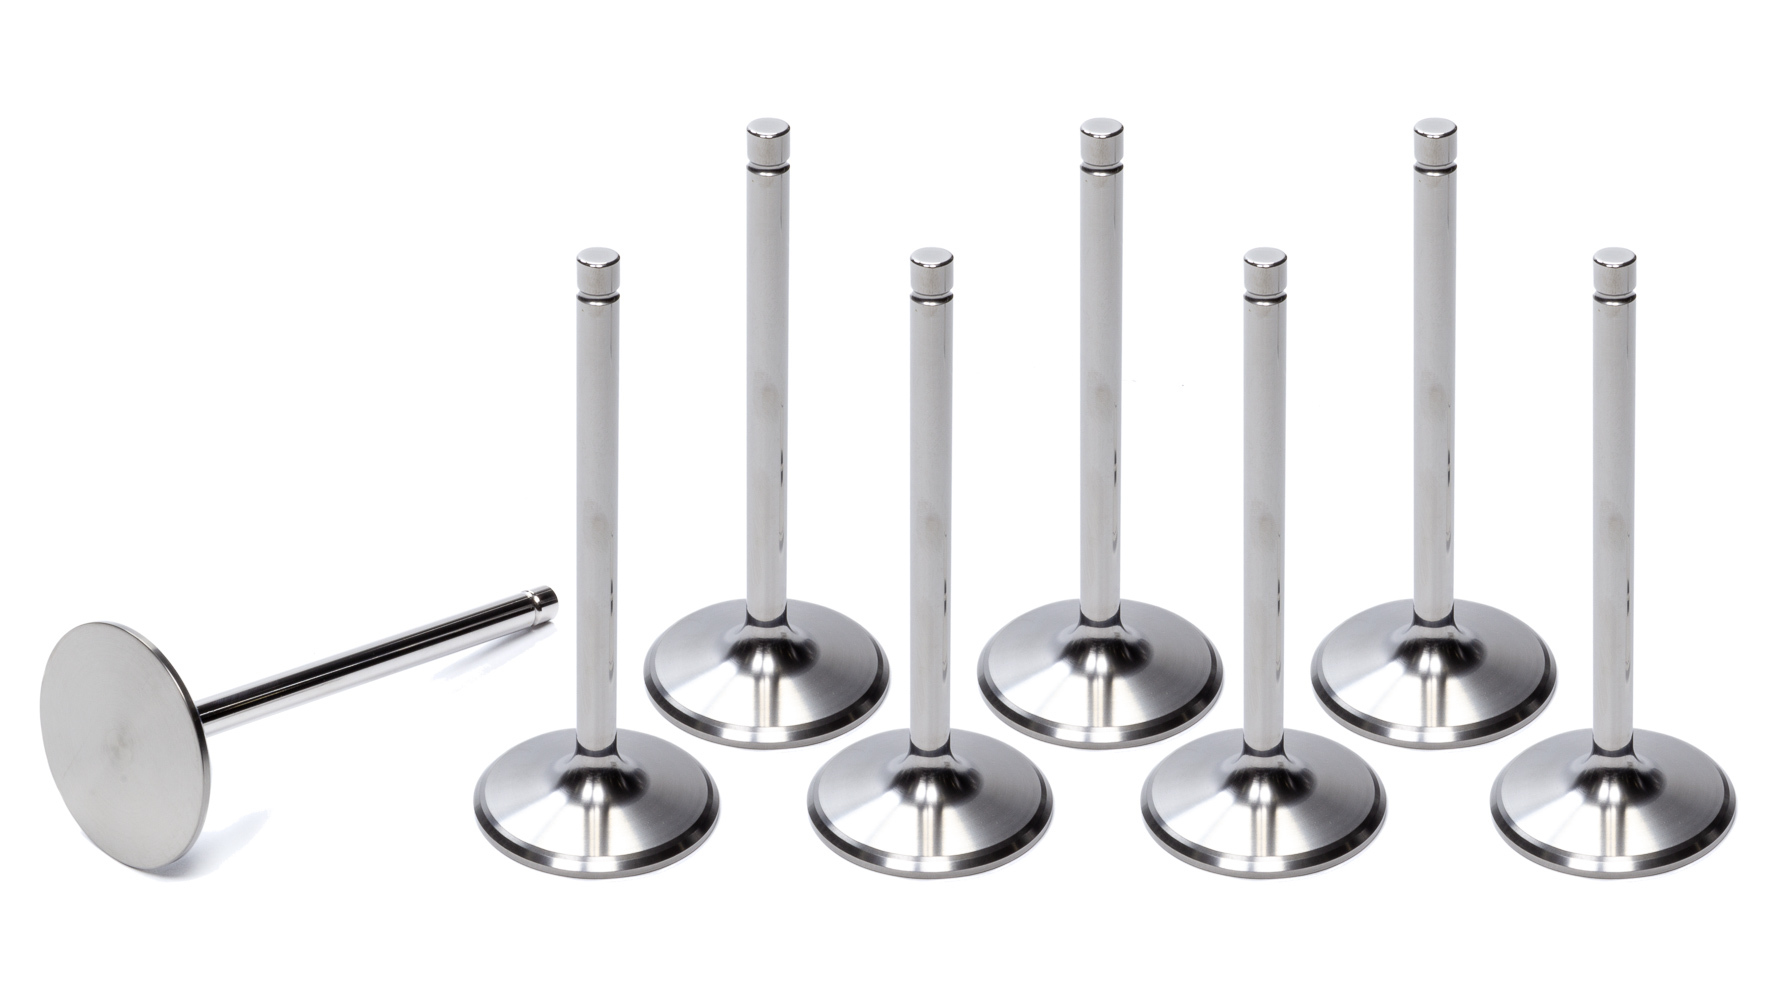 Trick Titanium TTICN2080-2R-8 Intake Valve, 2.080 in Head, 11/32 in Valve Stem, 5.140 in Long, Titanium, Small Block Chevy, Set of 8